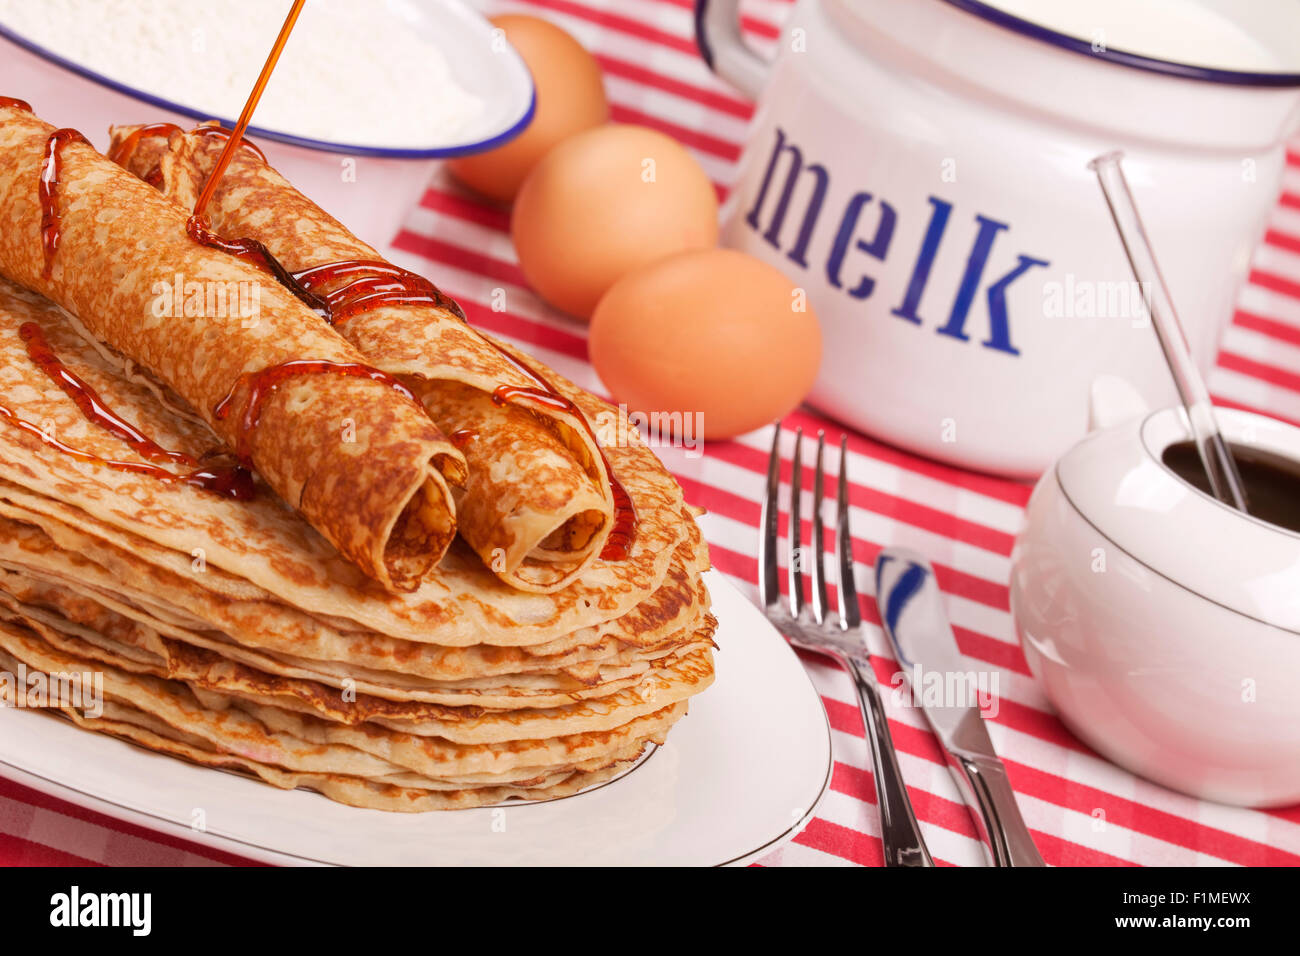 A stack of Dutch 'pannenkoeken met stroop' or pancakes with syrup. - Stock Image